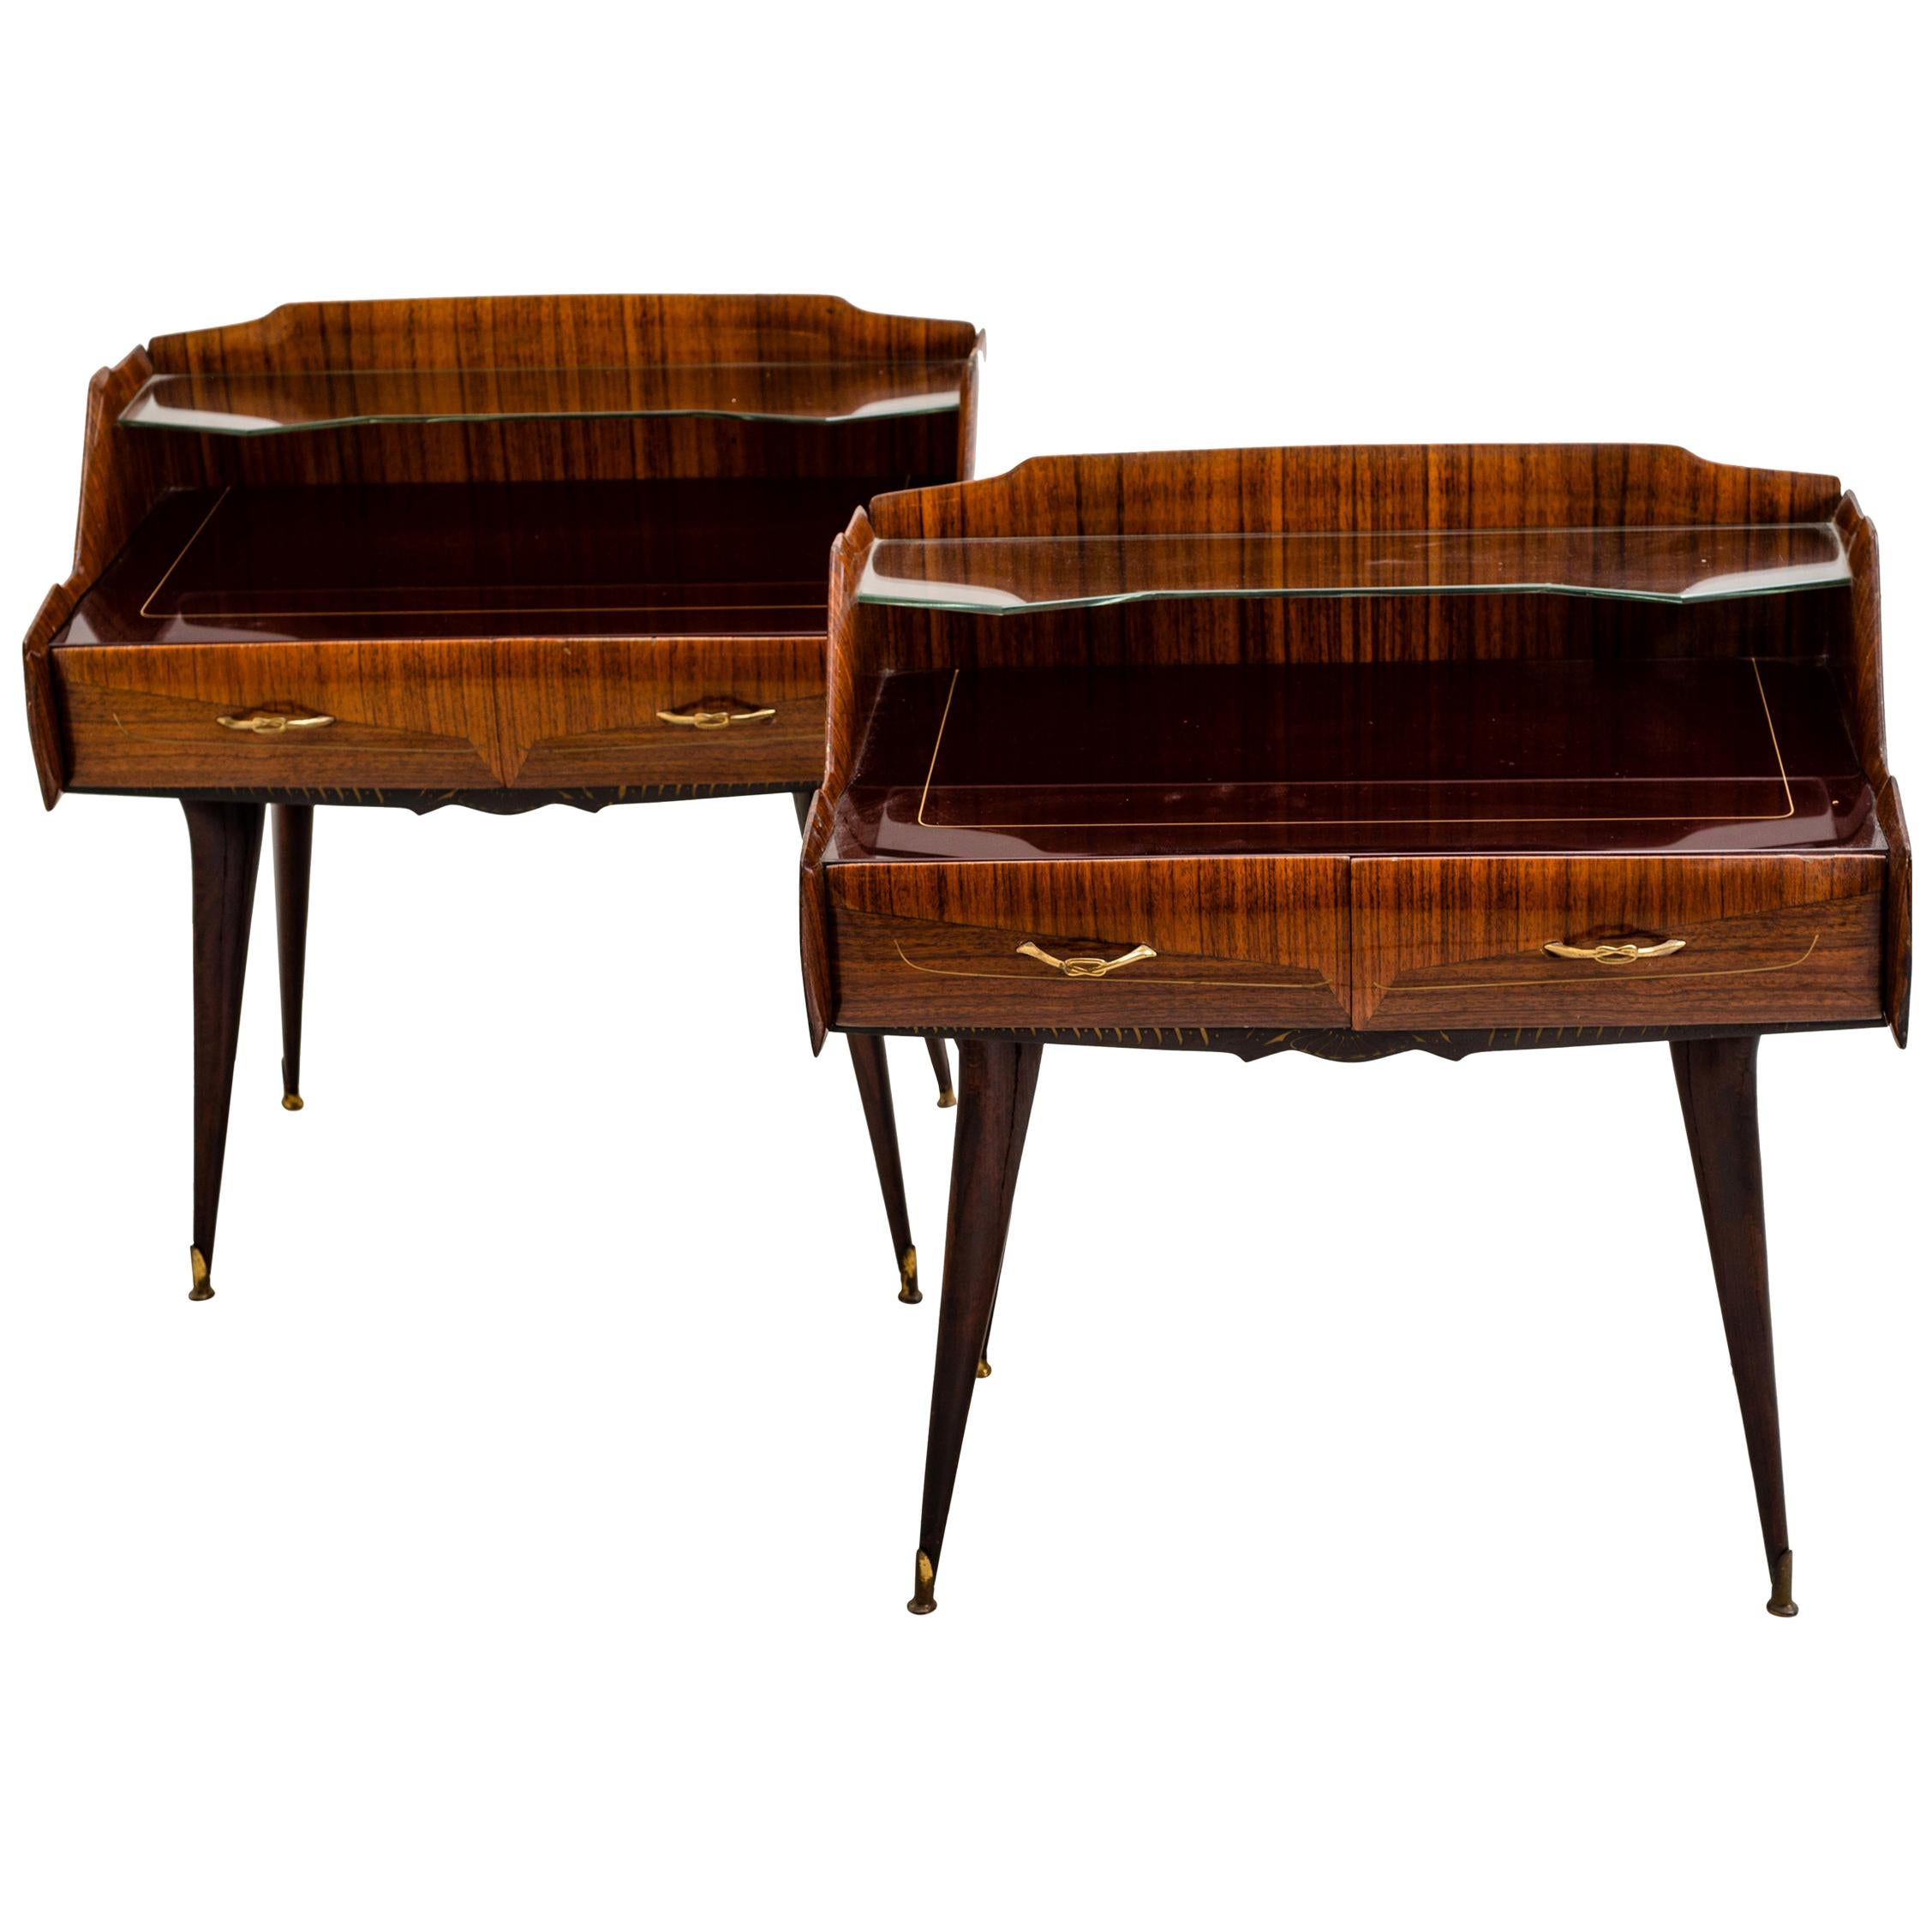 Pair of Italian Midcentury Nightstands in the Style of Paolo Buffa, circa 1950s